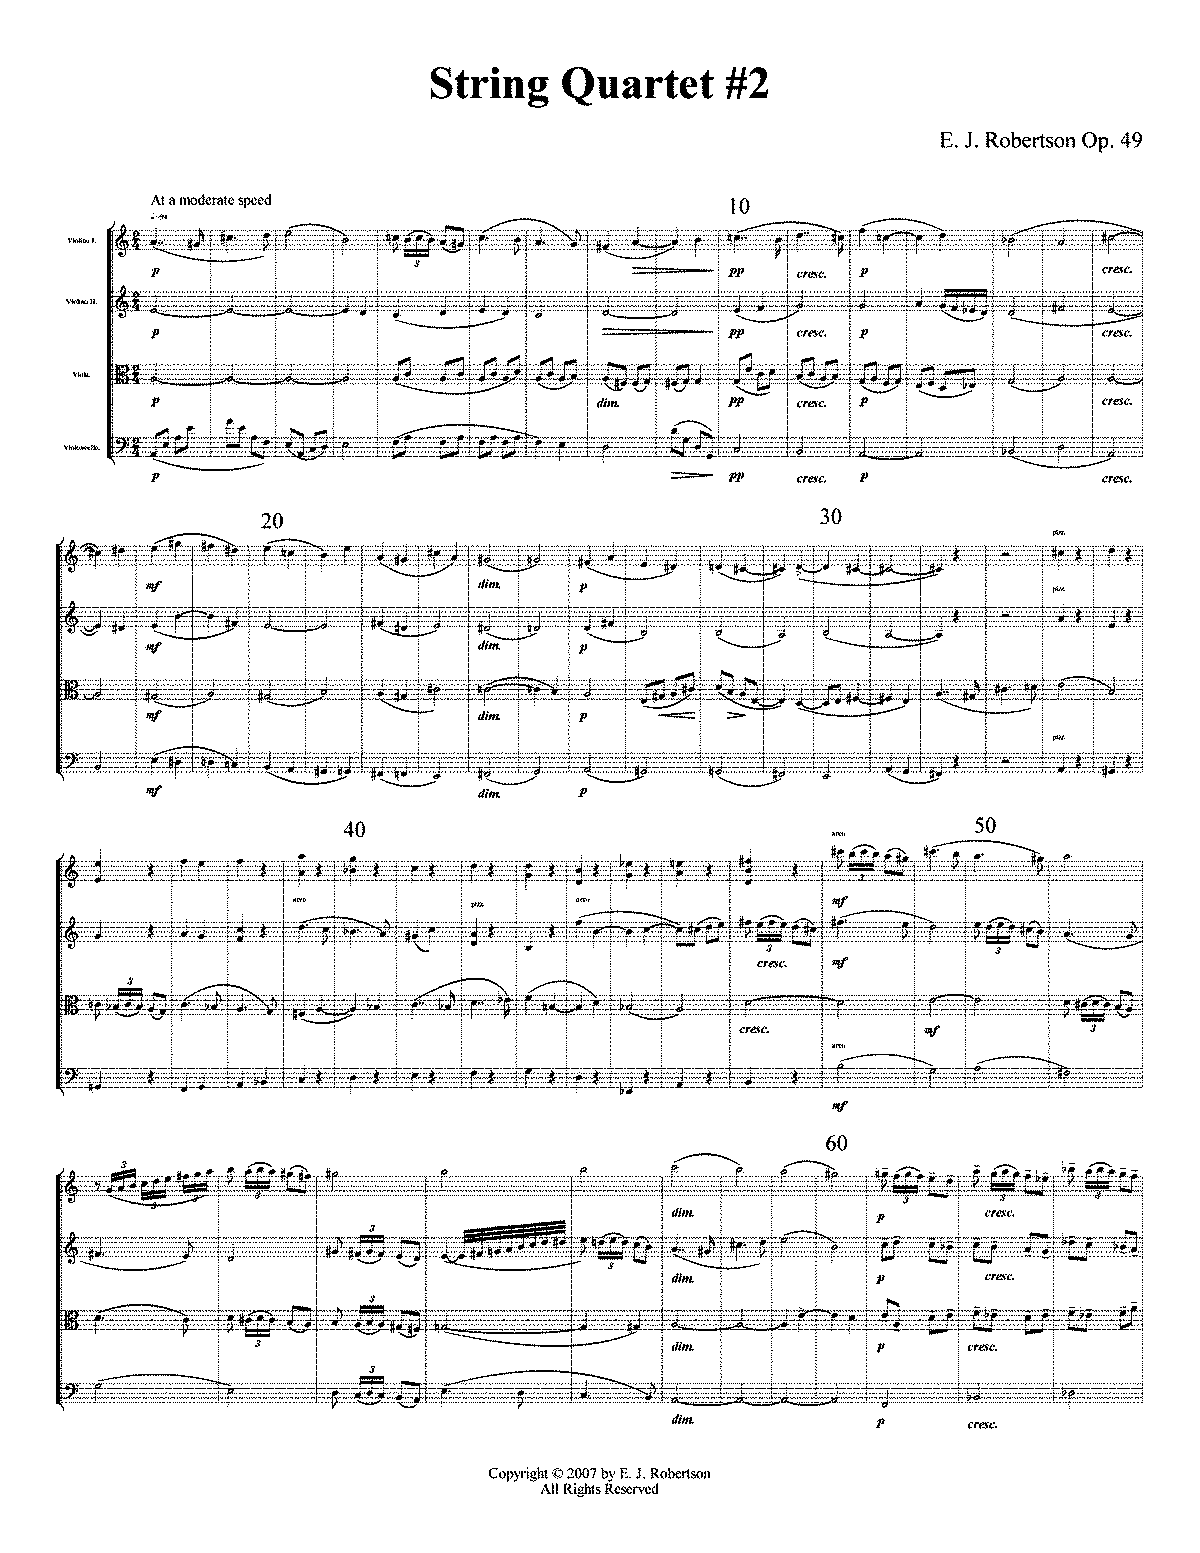 PMLP474522-String Quarttet -2 SCORE.pdf